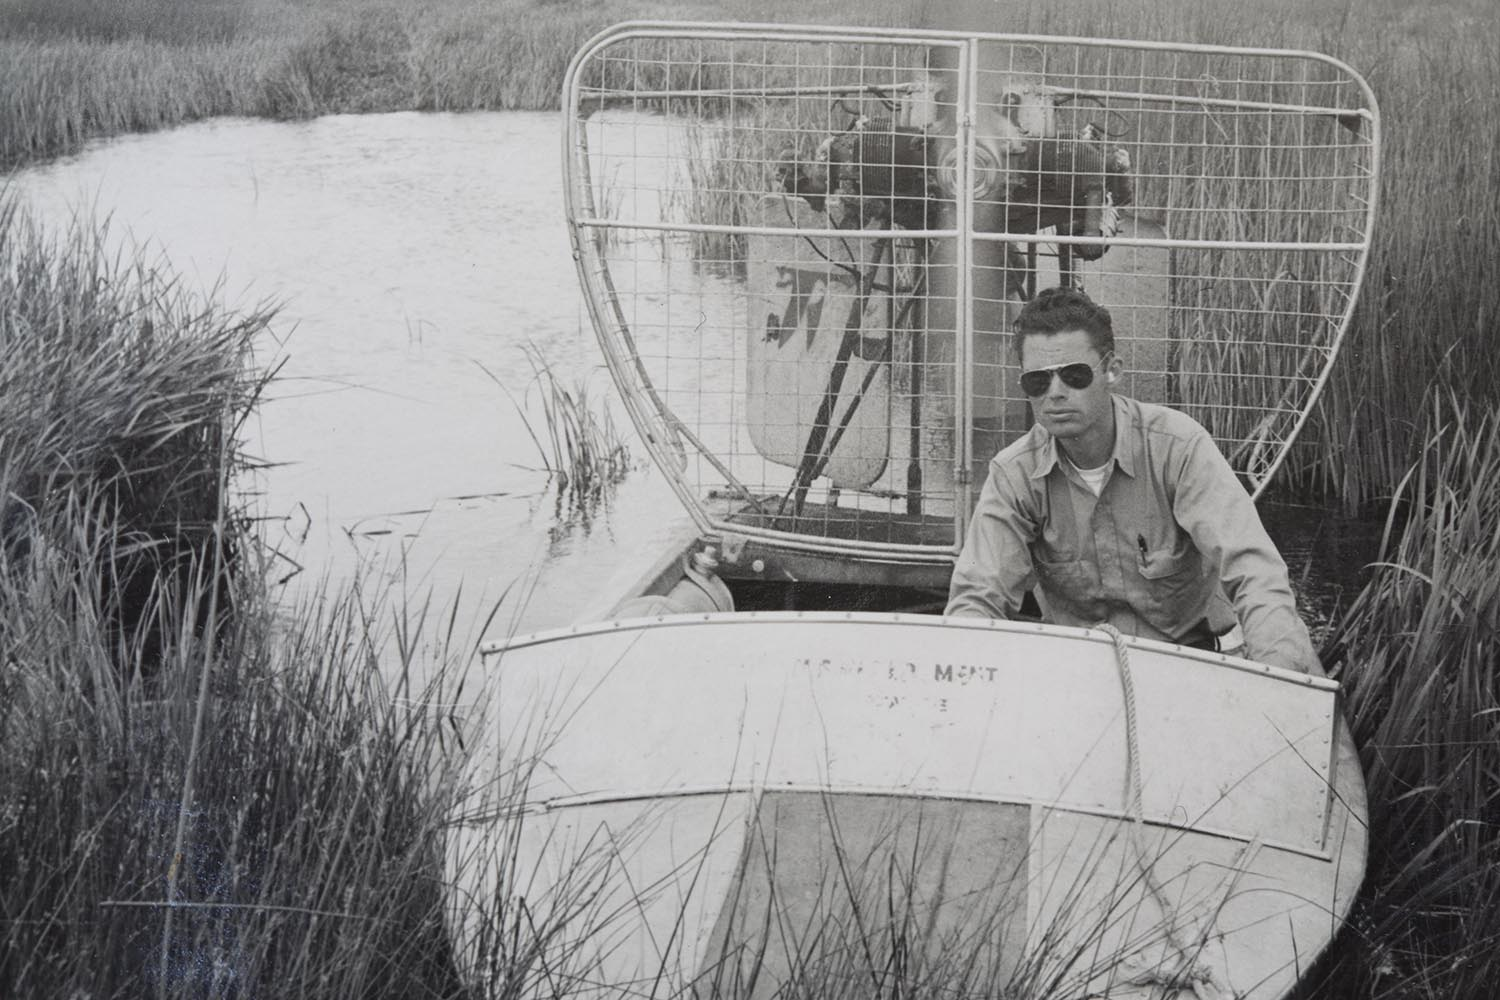 David B. Marshall at Malheur National Wildlife Refuge, Oregon in the 1950s